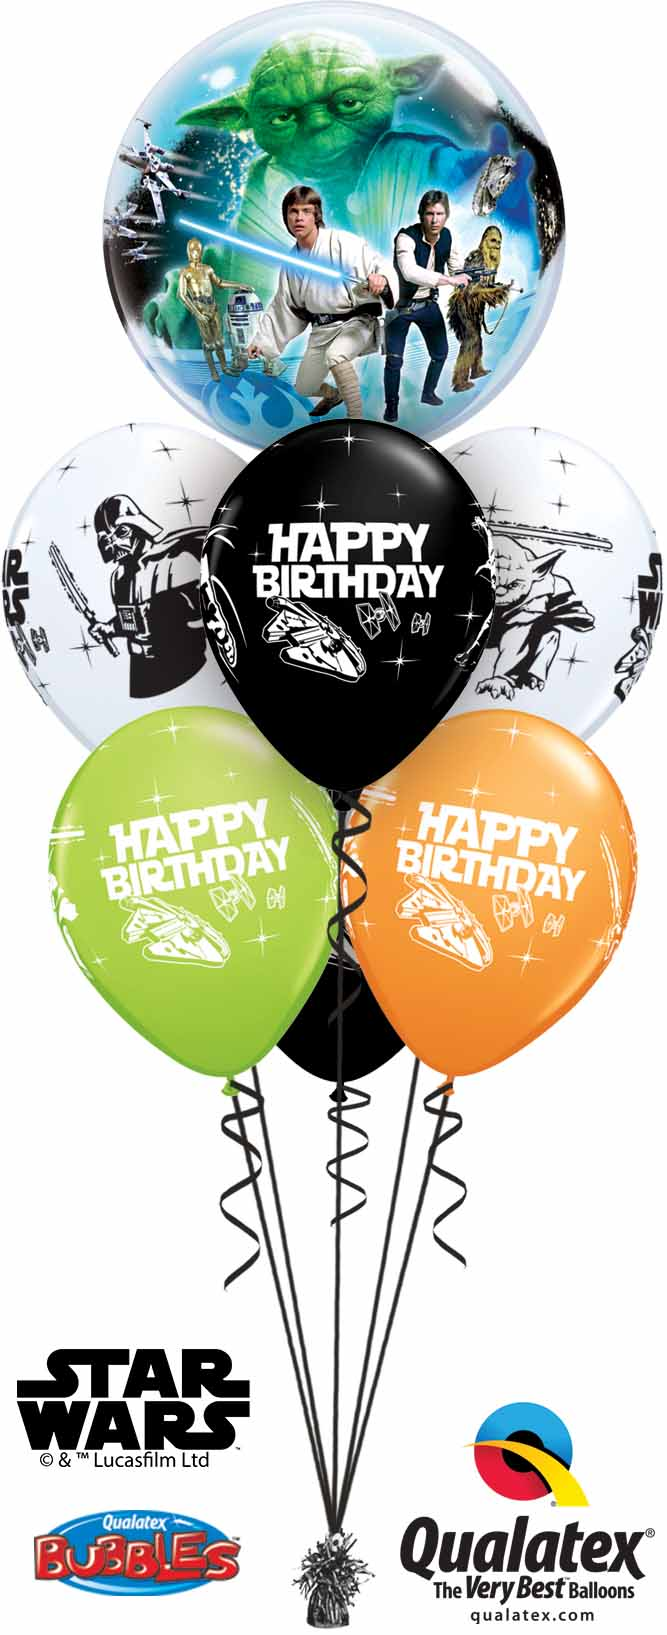 10474 18669 Star Wars Birthday Bubble Luxury